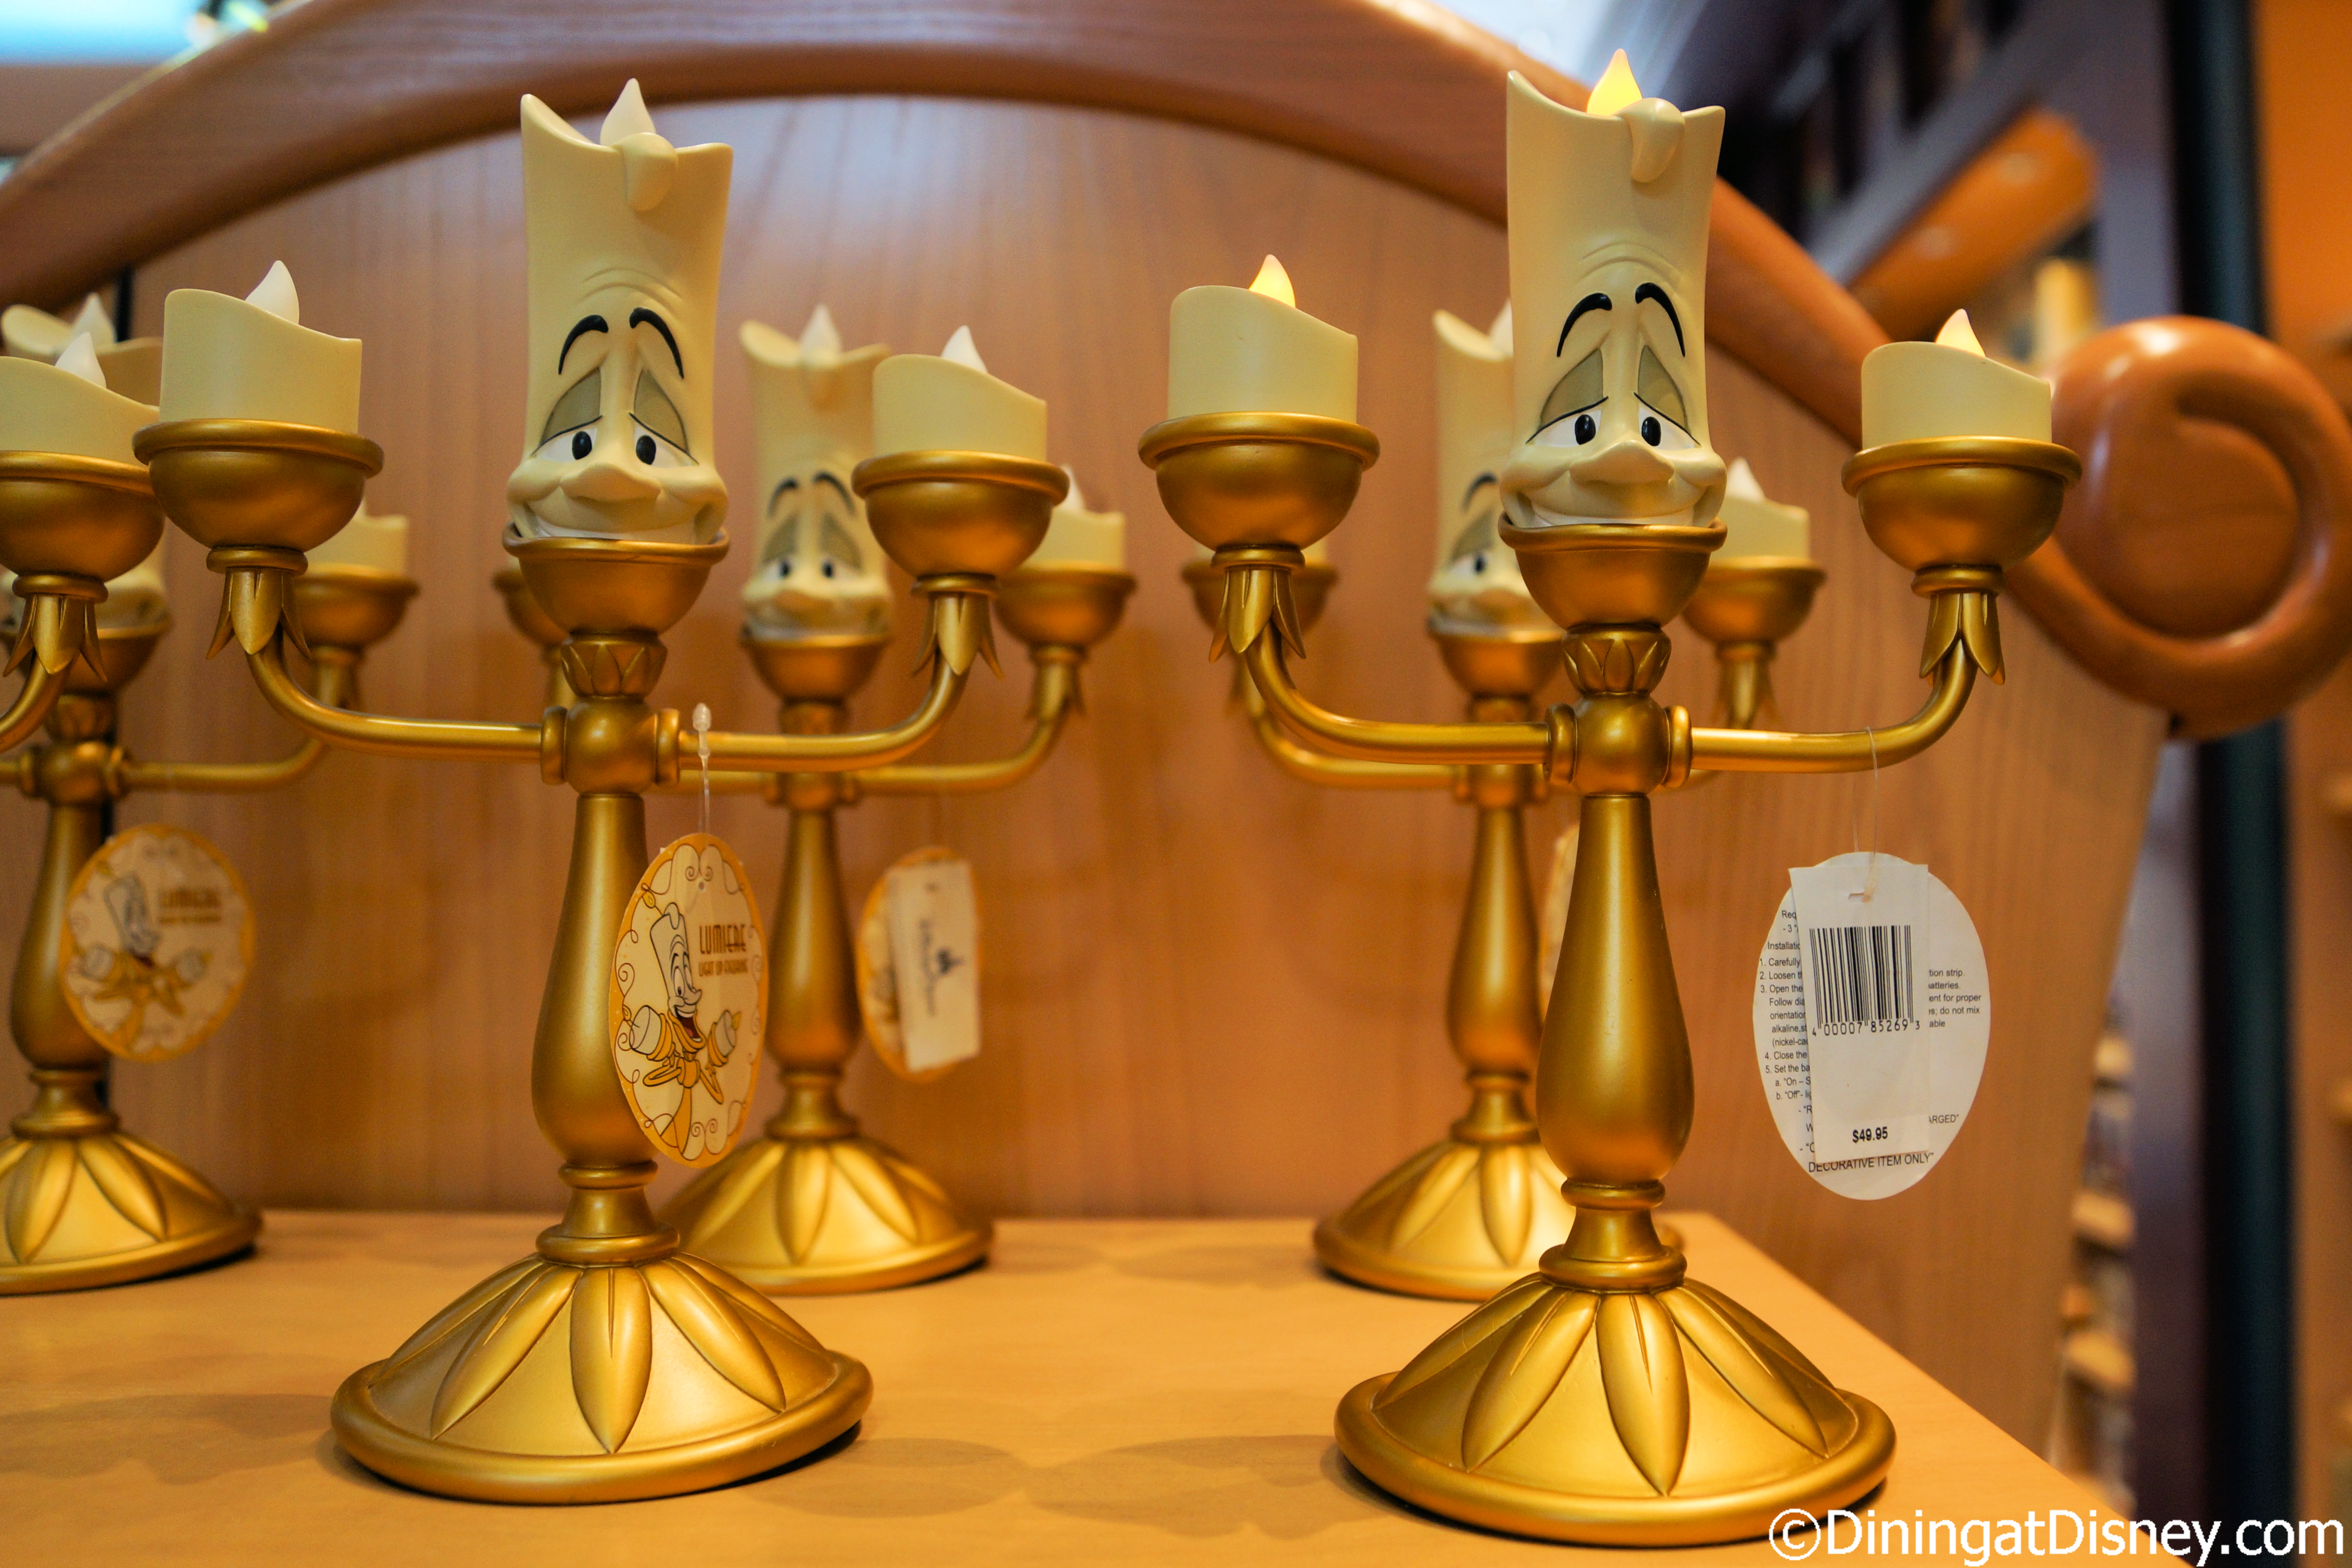 Light up lumiere from world of disney light up lumiere from world of disney arubaitofo Choice Image